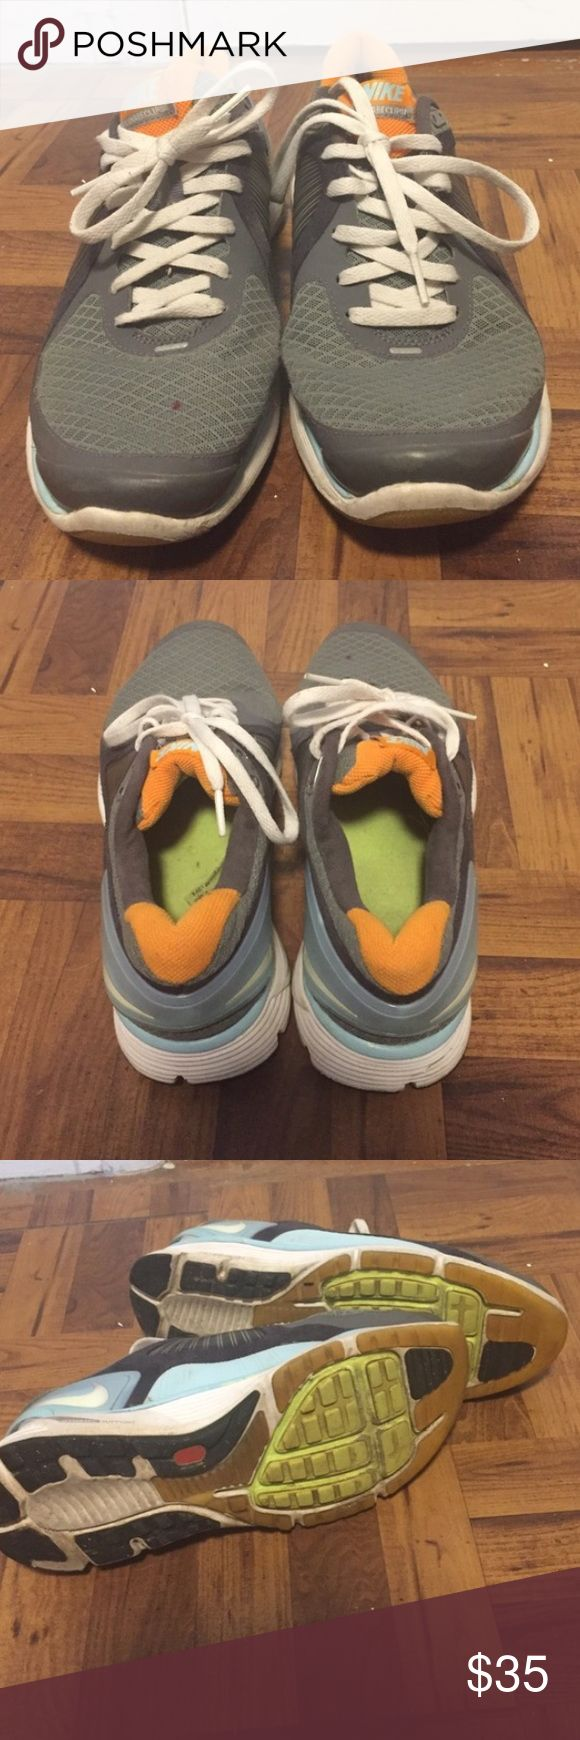 💗LAST CHANCE💗Nike Grey, Blue, & Orange Sneakers In good condition. Great for working out! Nike Shoes